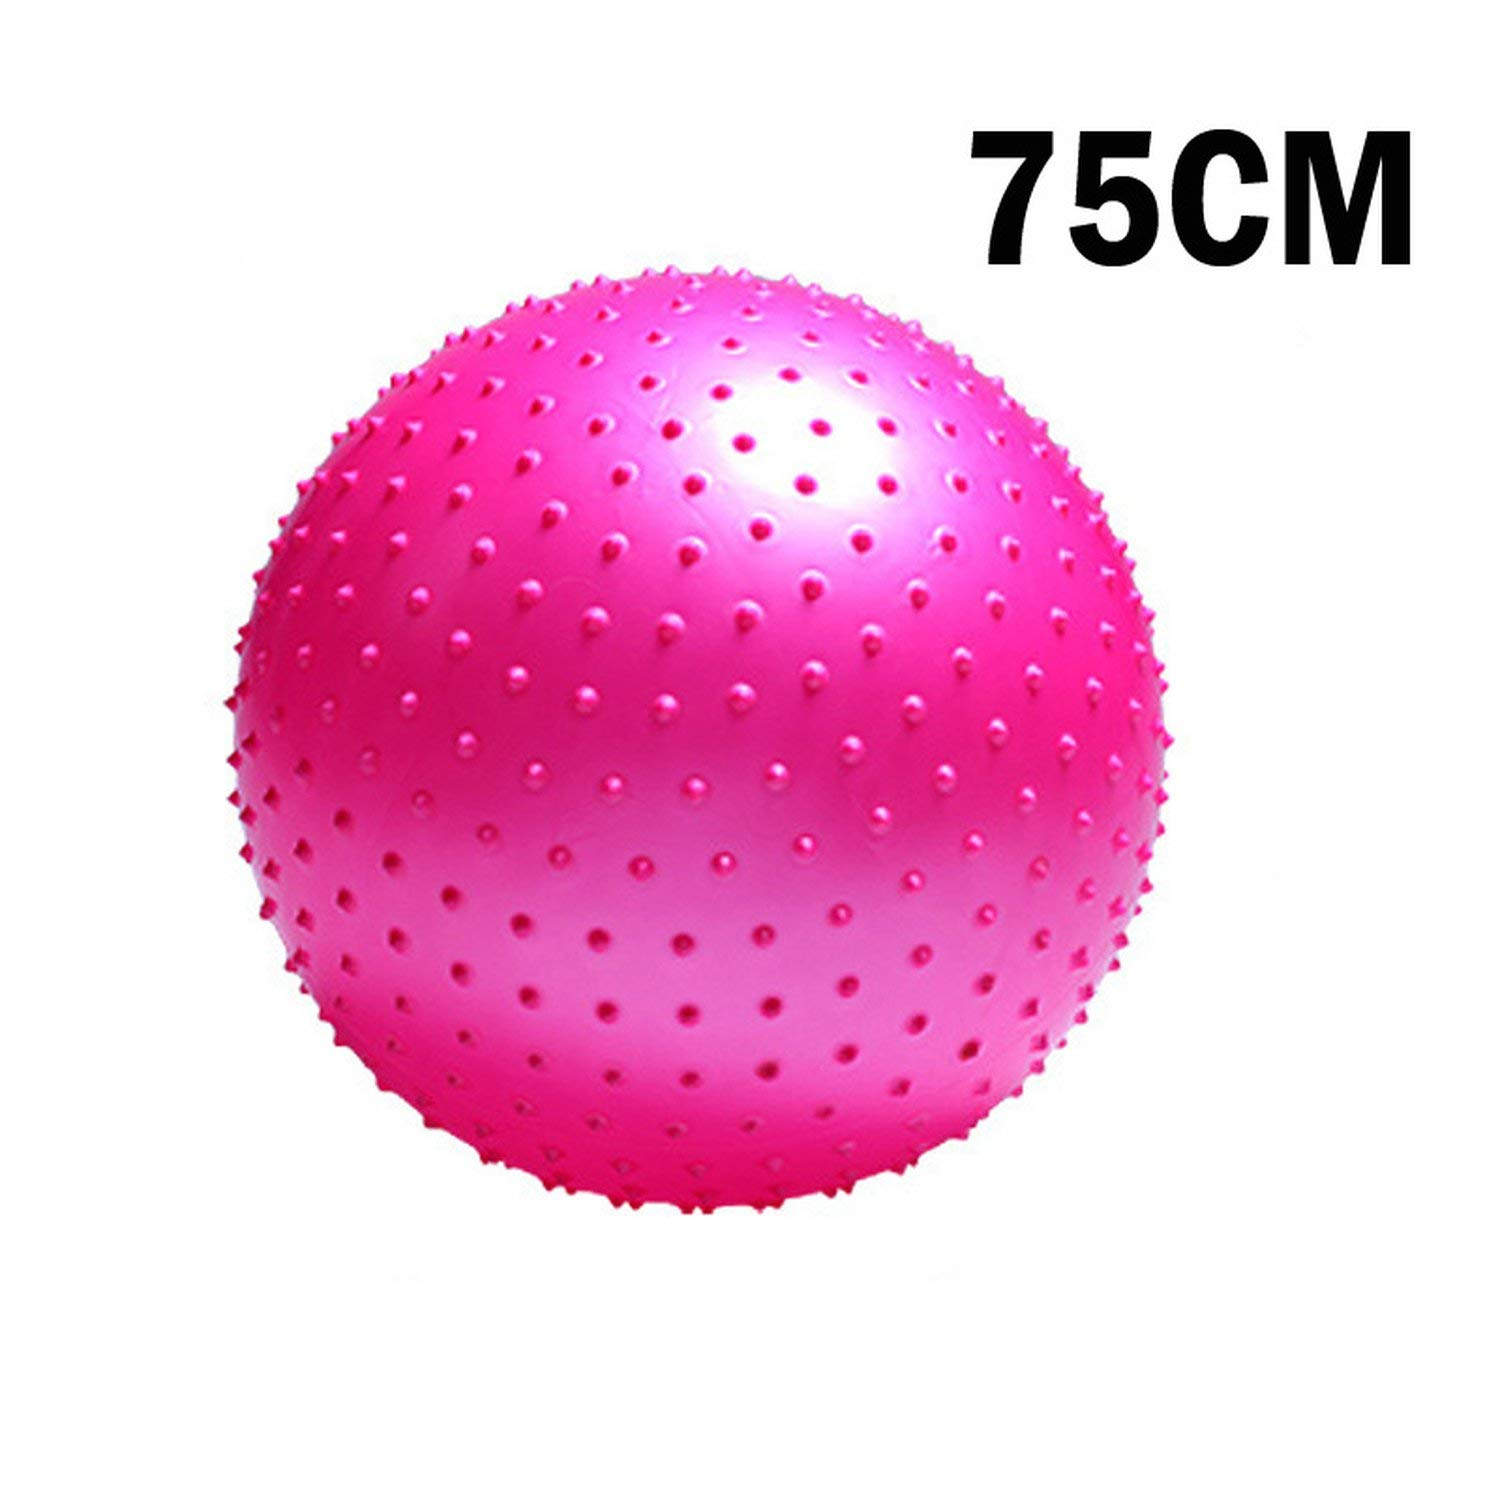 75CM Pink One Size Sports Yoga Ball Point Fitness Gym Balance Ball Exercise Workout Barbed Massage Ball 55cm 65cm 75cm 85cm